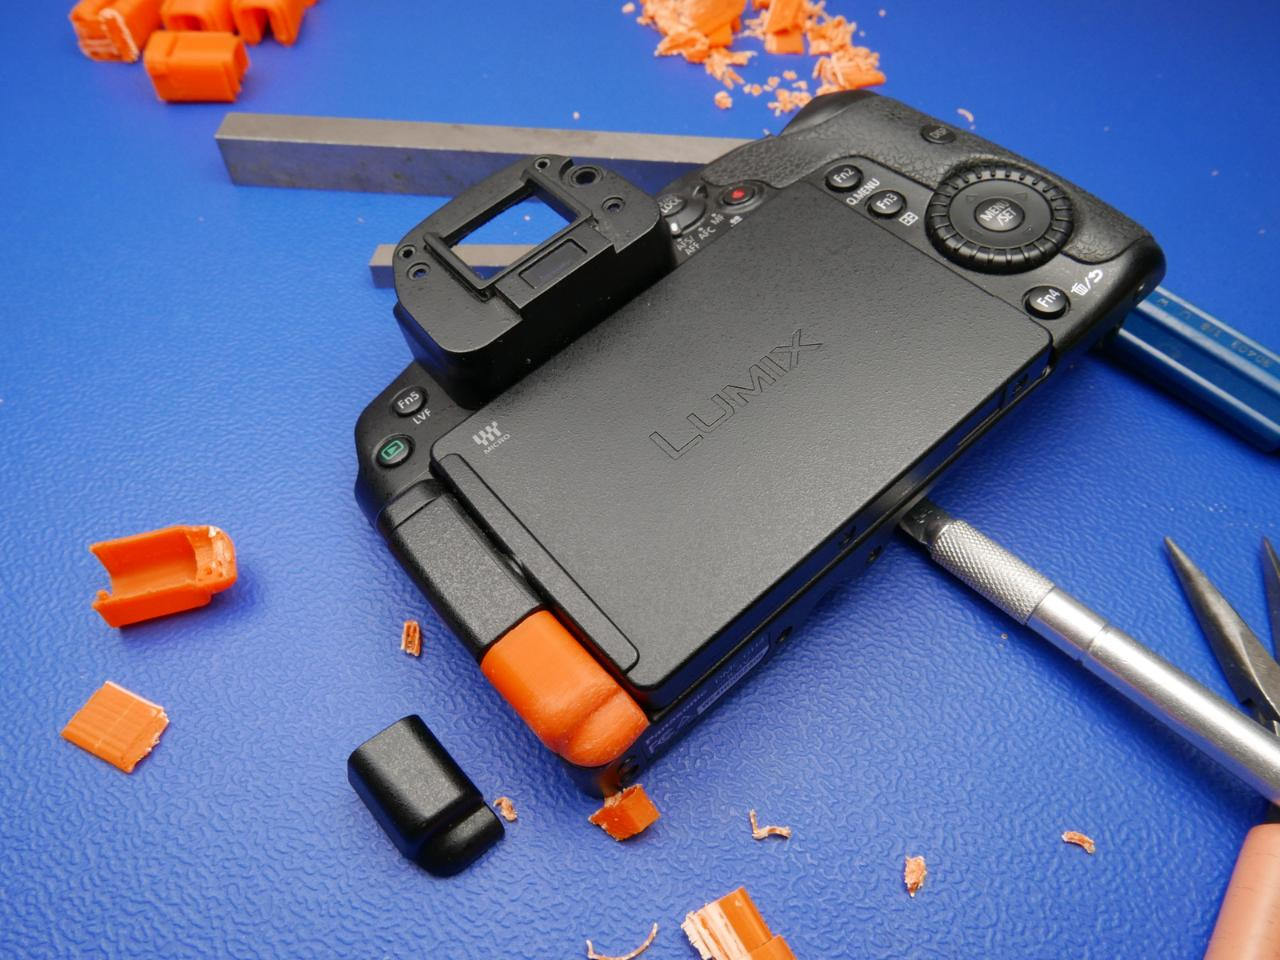 Anthony Kouttron took first place in the Dare to Repair contest with his Panasonic Lumix hinge cover prototype.